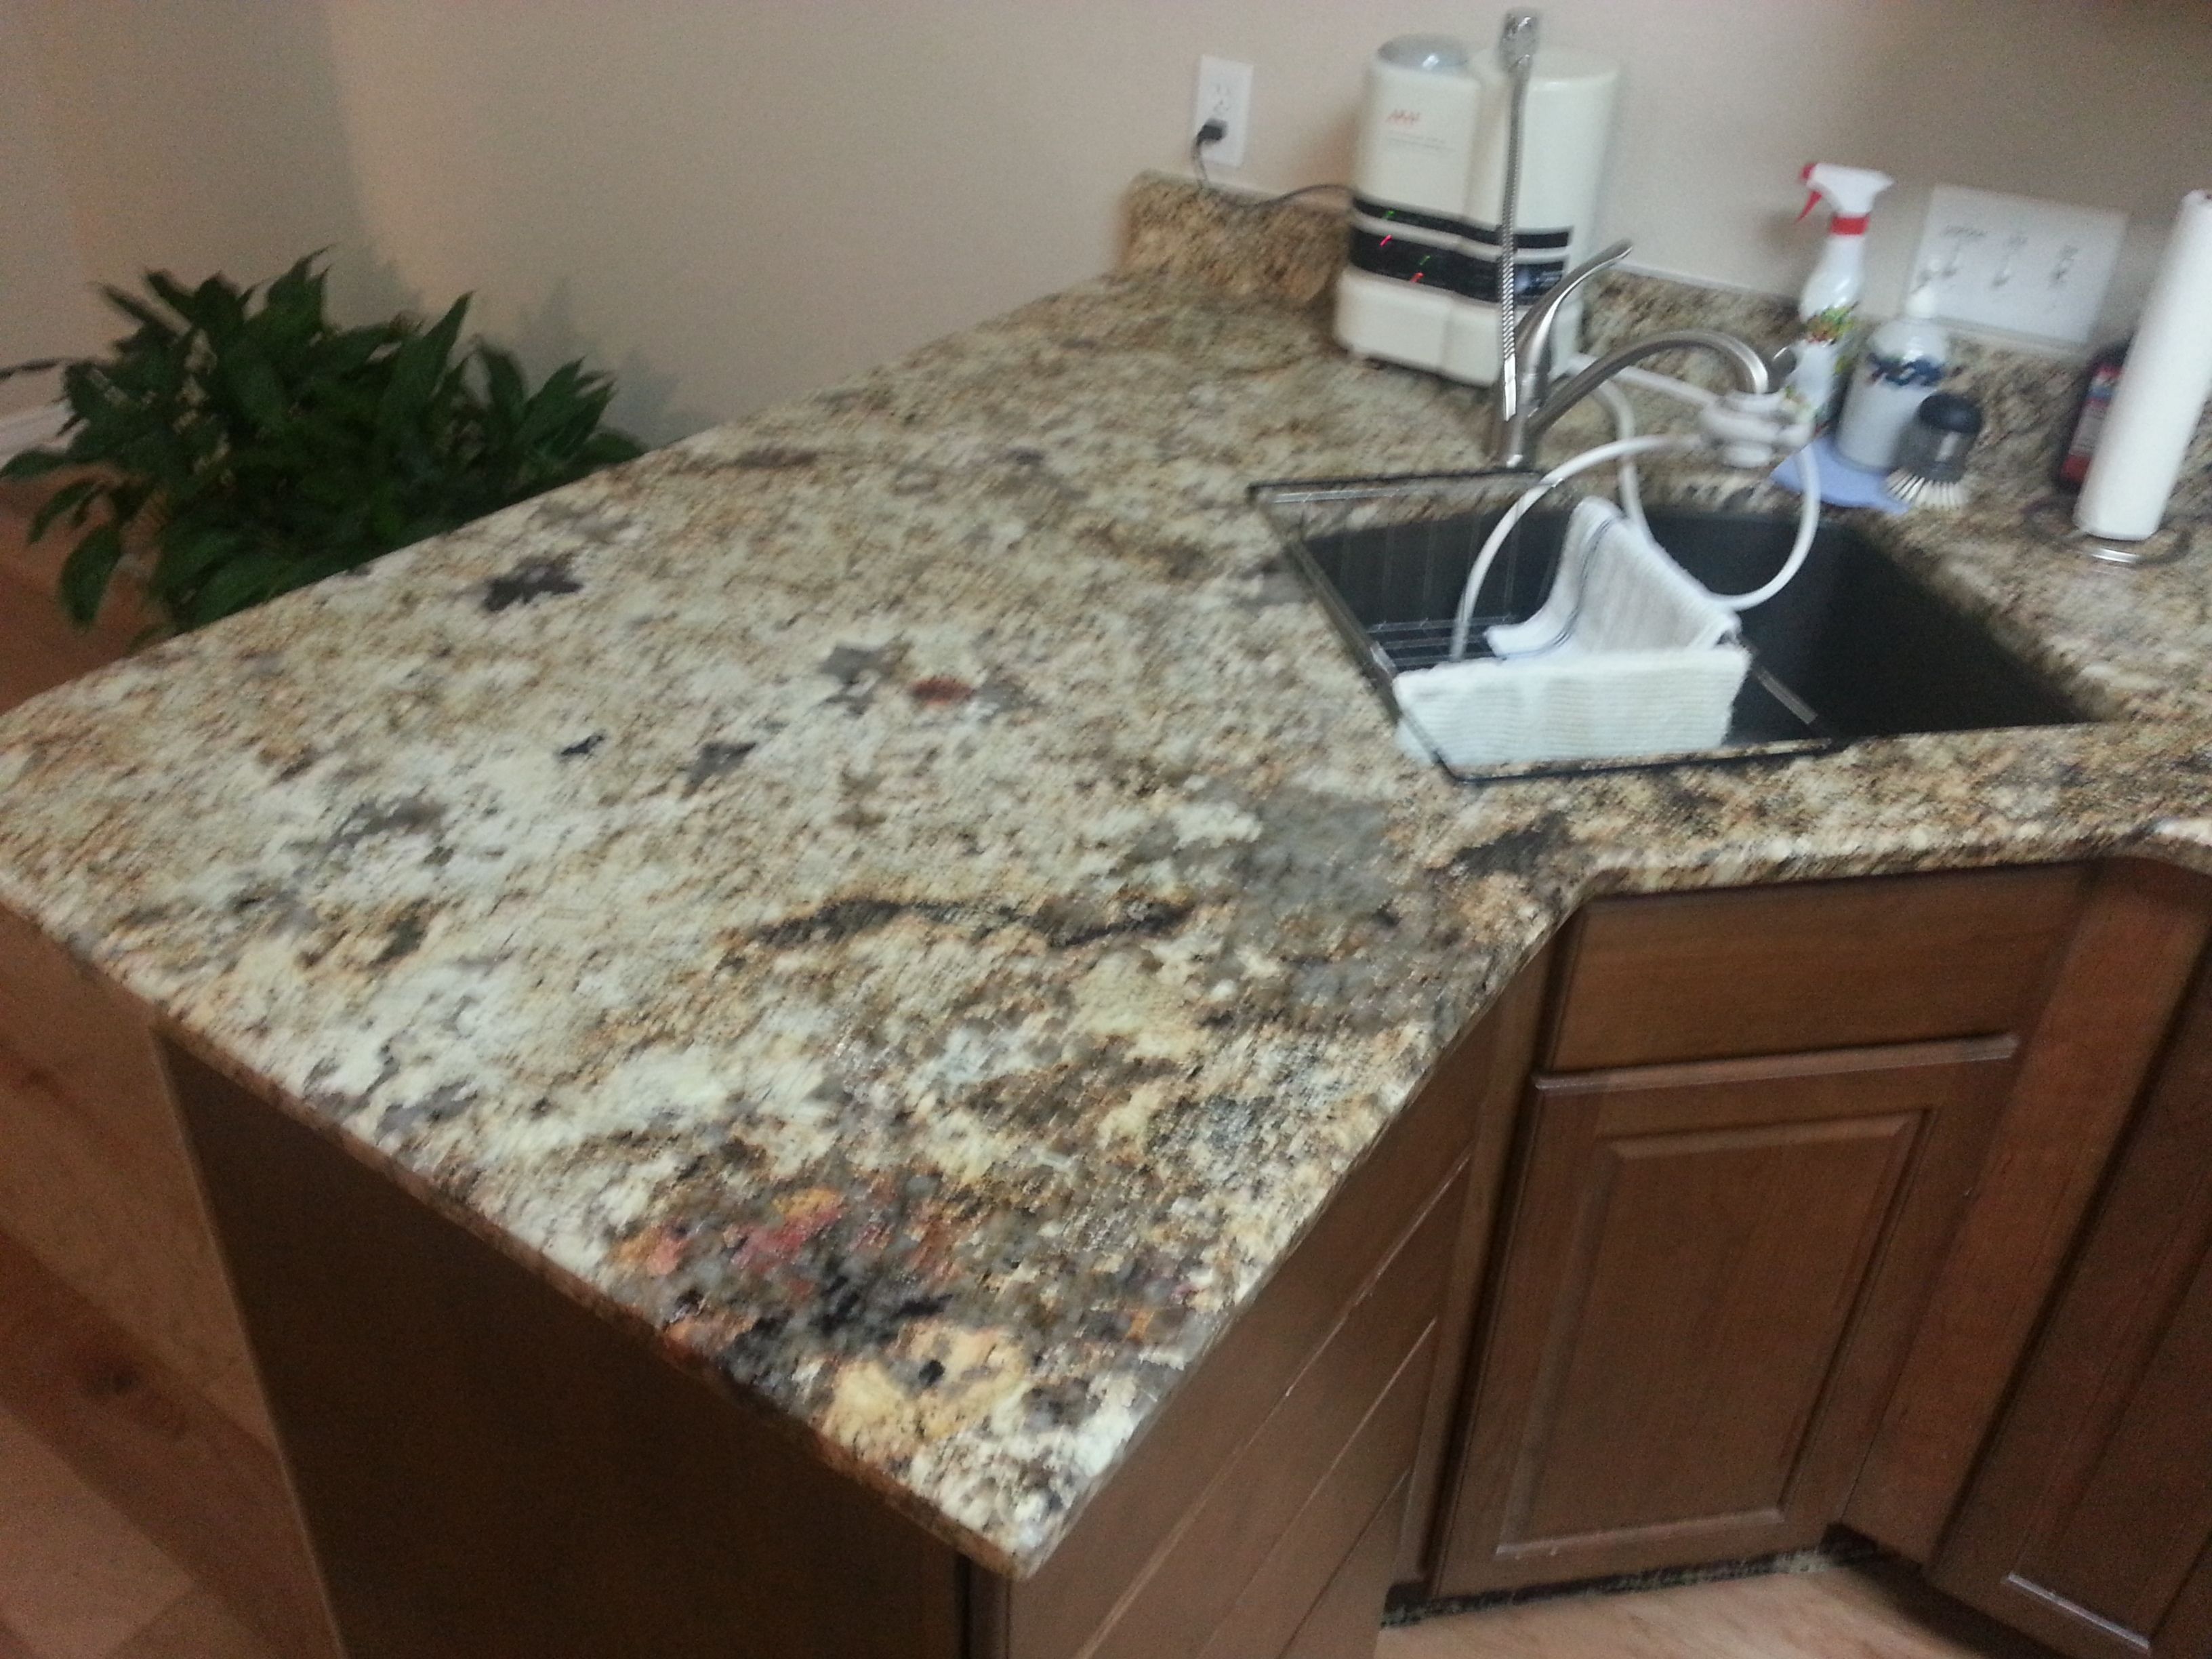 Best Rated Countertops Kitchen Granite Countertops Are Rated 2nd Best After